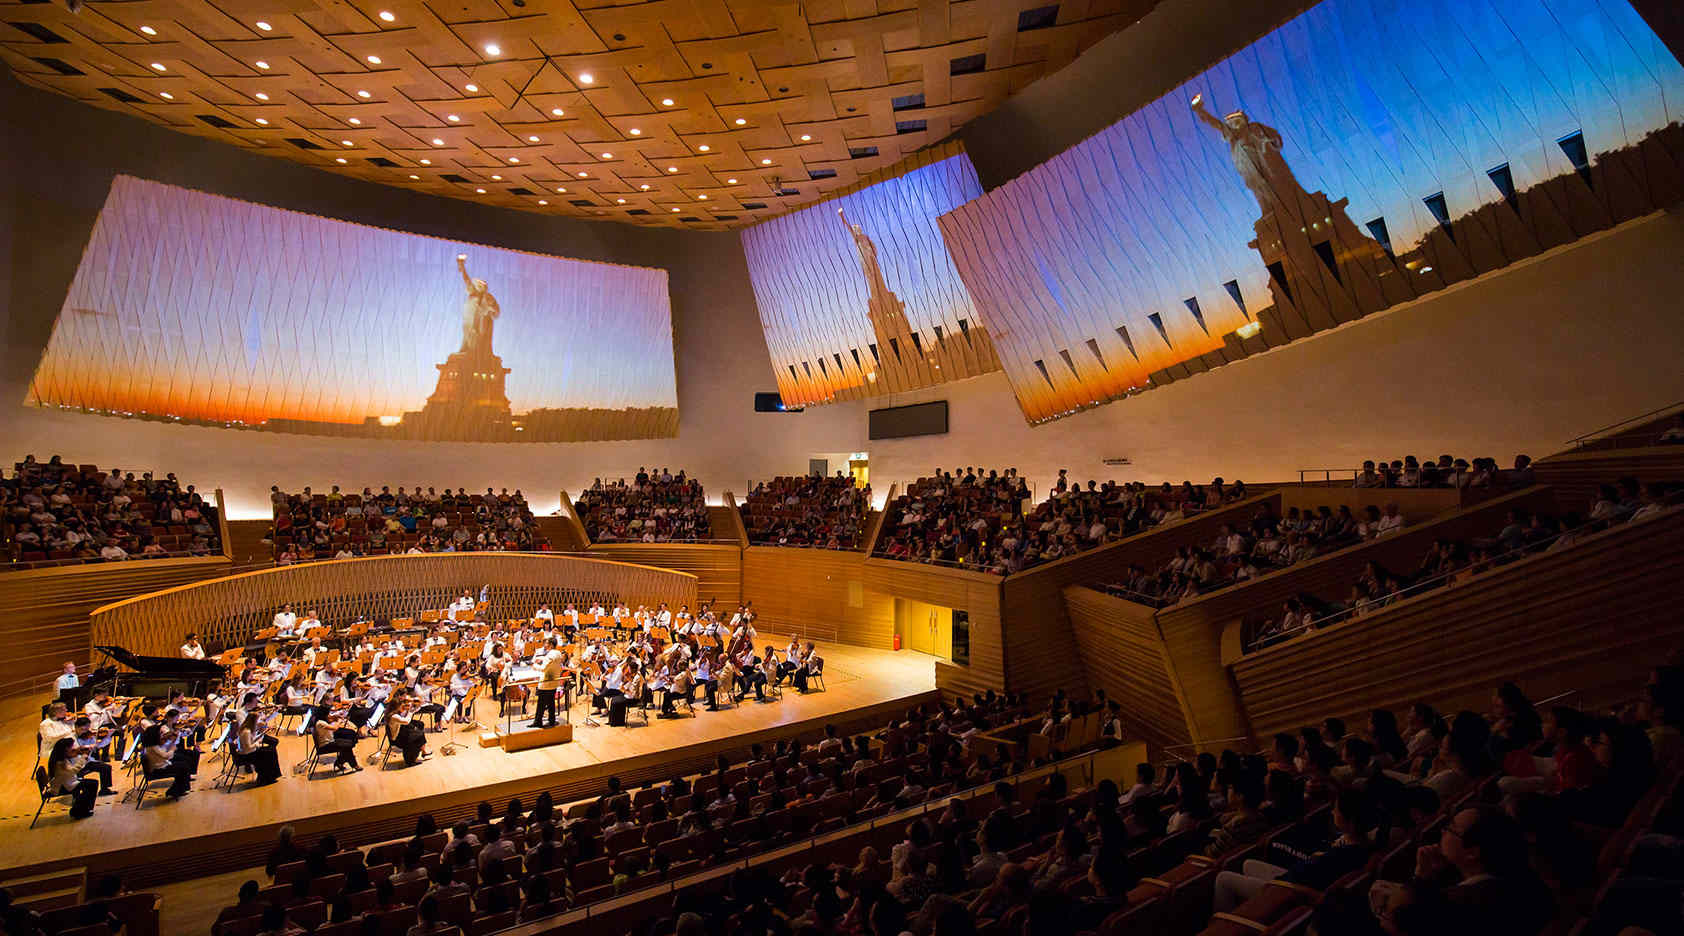 Young People's Concert in Shanghai